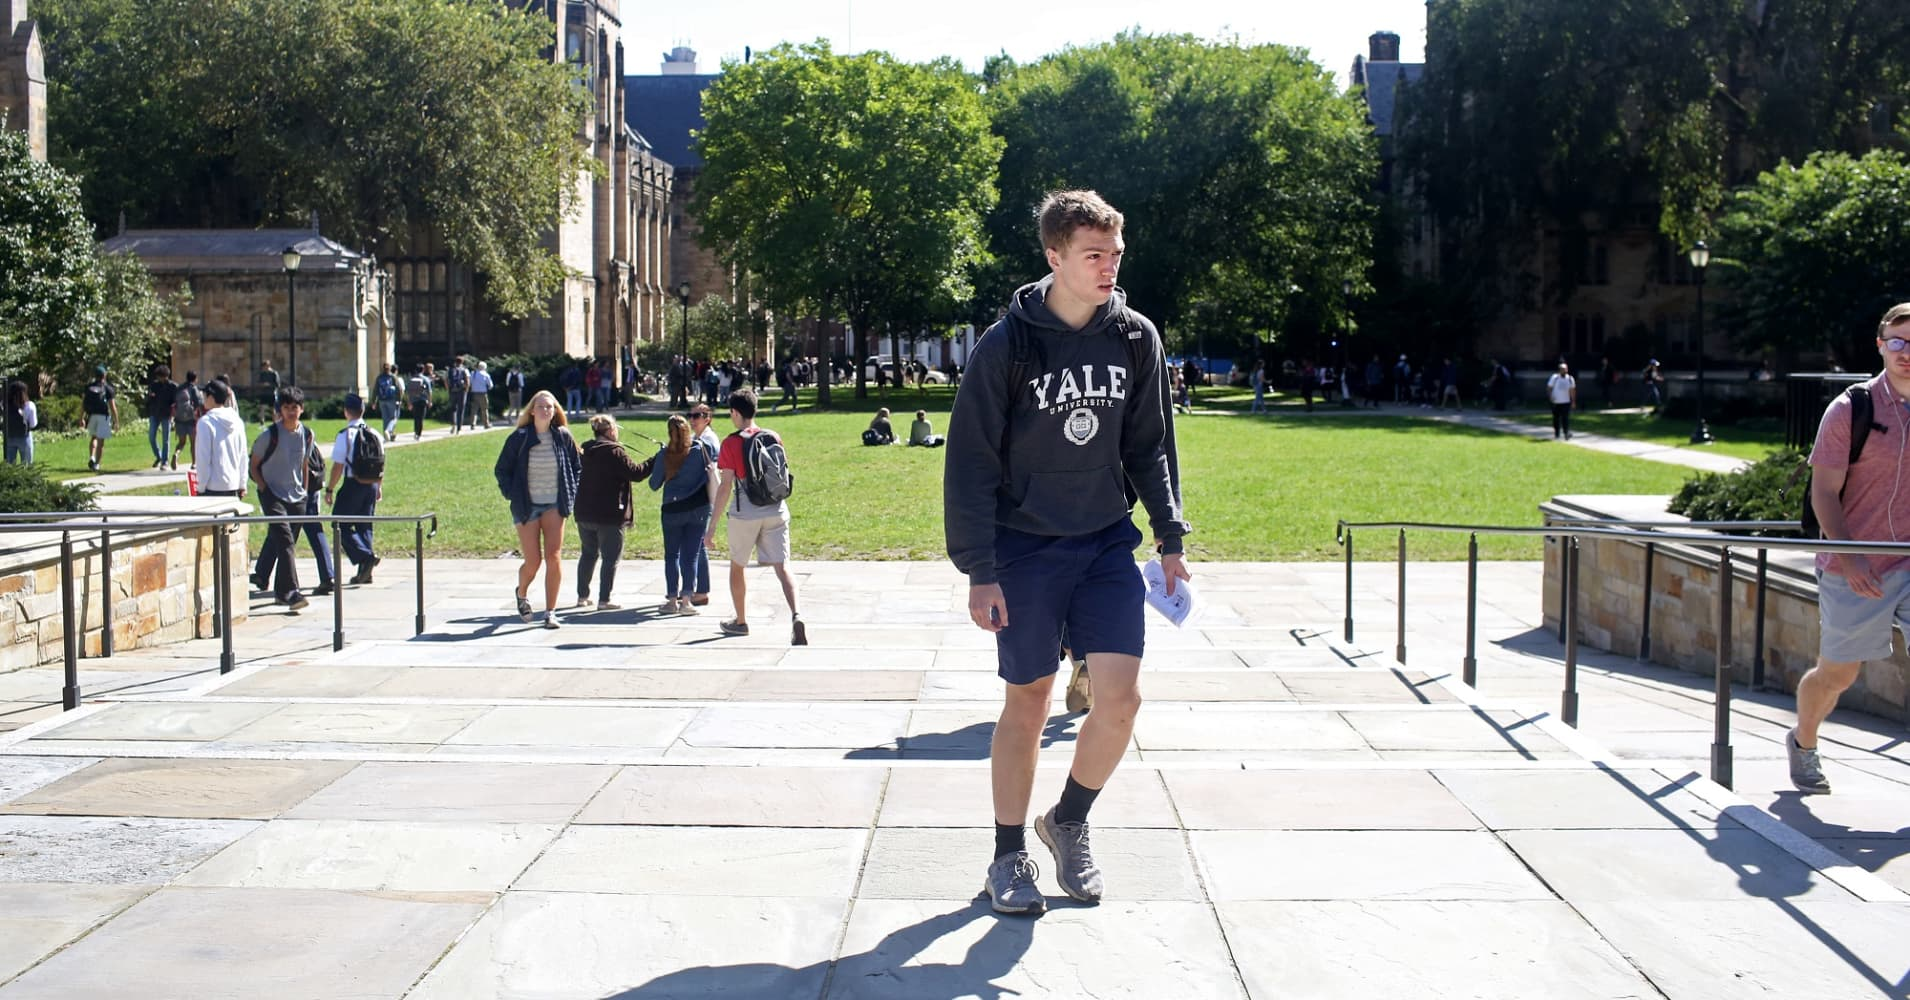 Students on campus of Yale University